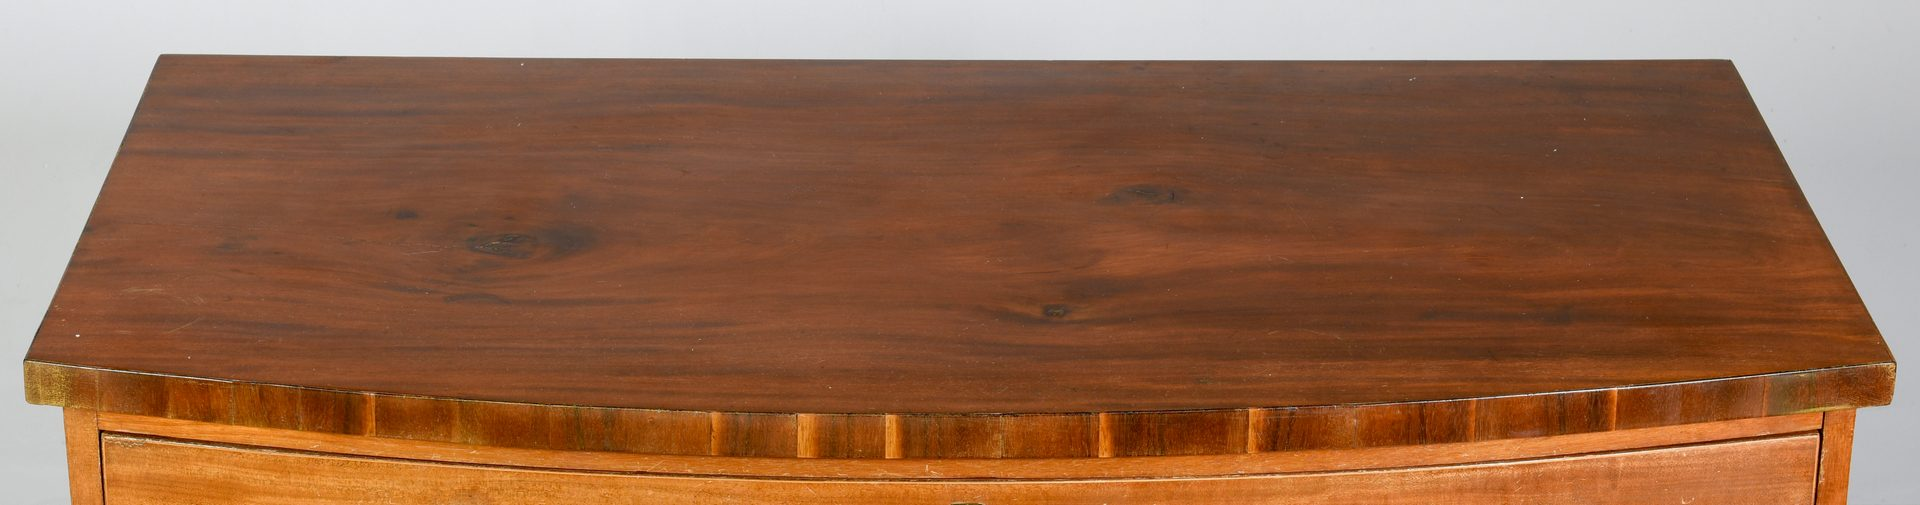 Lot 113: American Federal Bowfront Chest